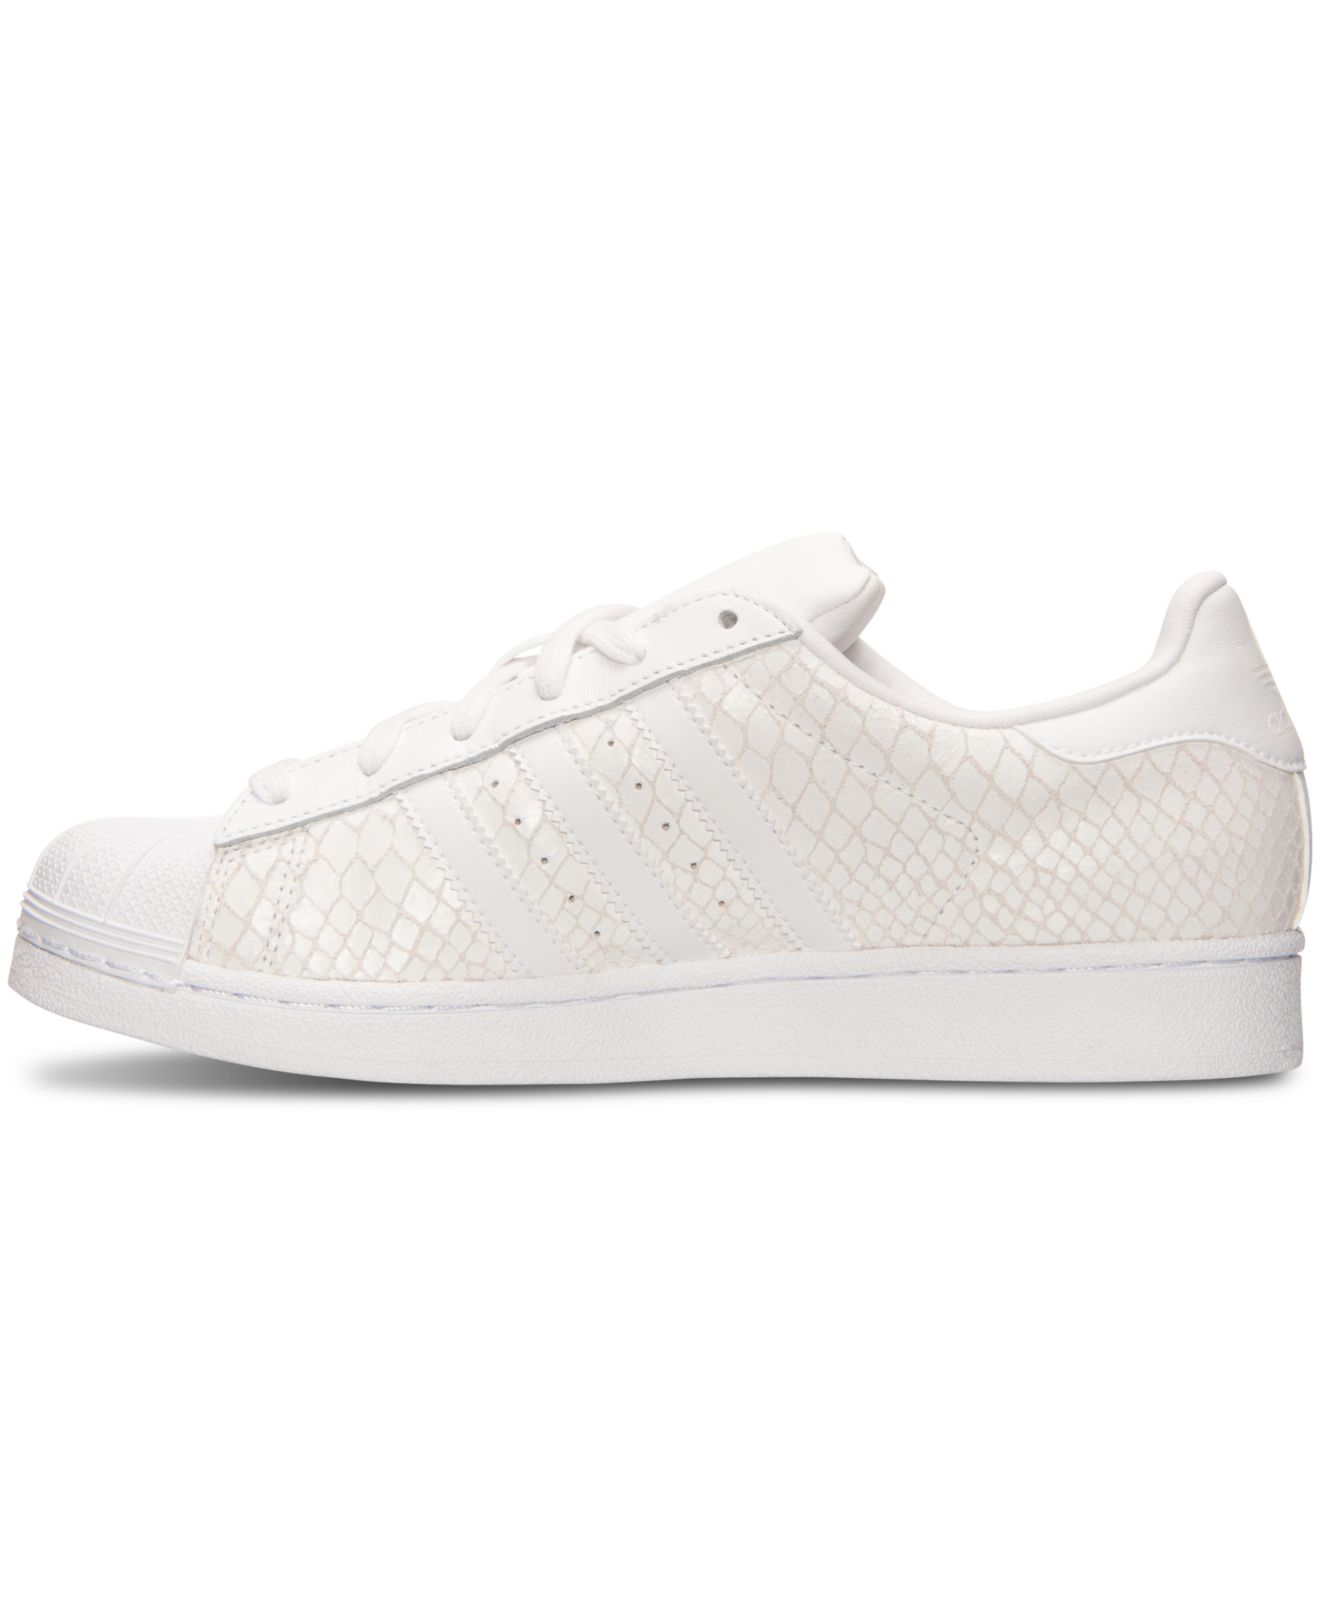 Lyst - adidas Originals Women s Superstar Casual Sneakers From Finish Line  in White 66ac04b24